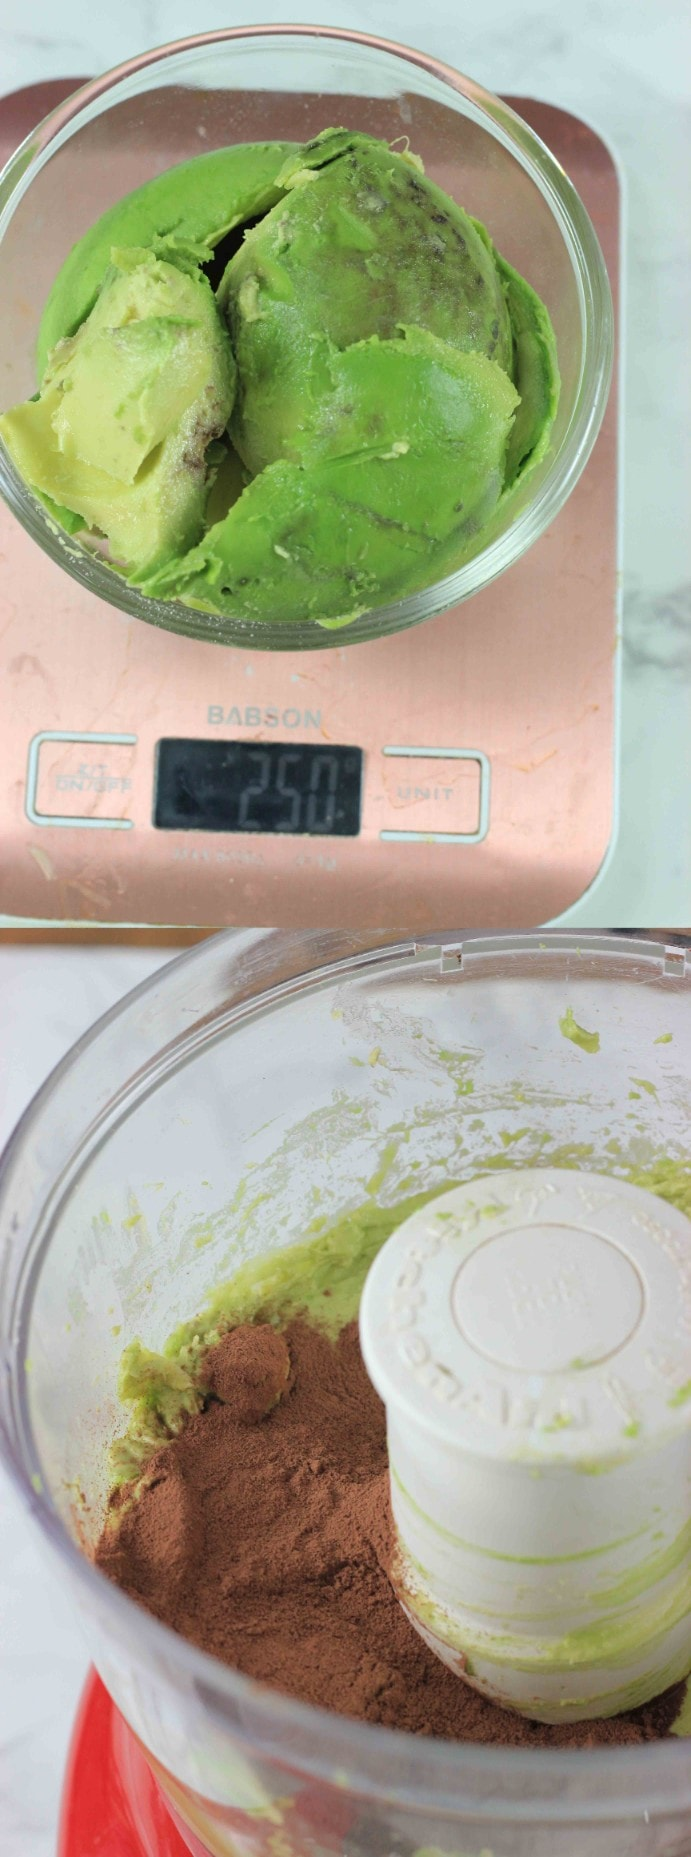 Weigh your avocados when making avocado brownies.